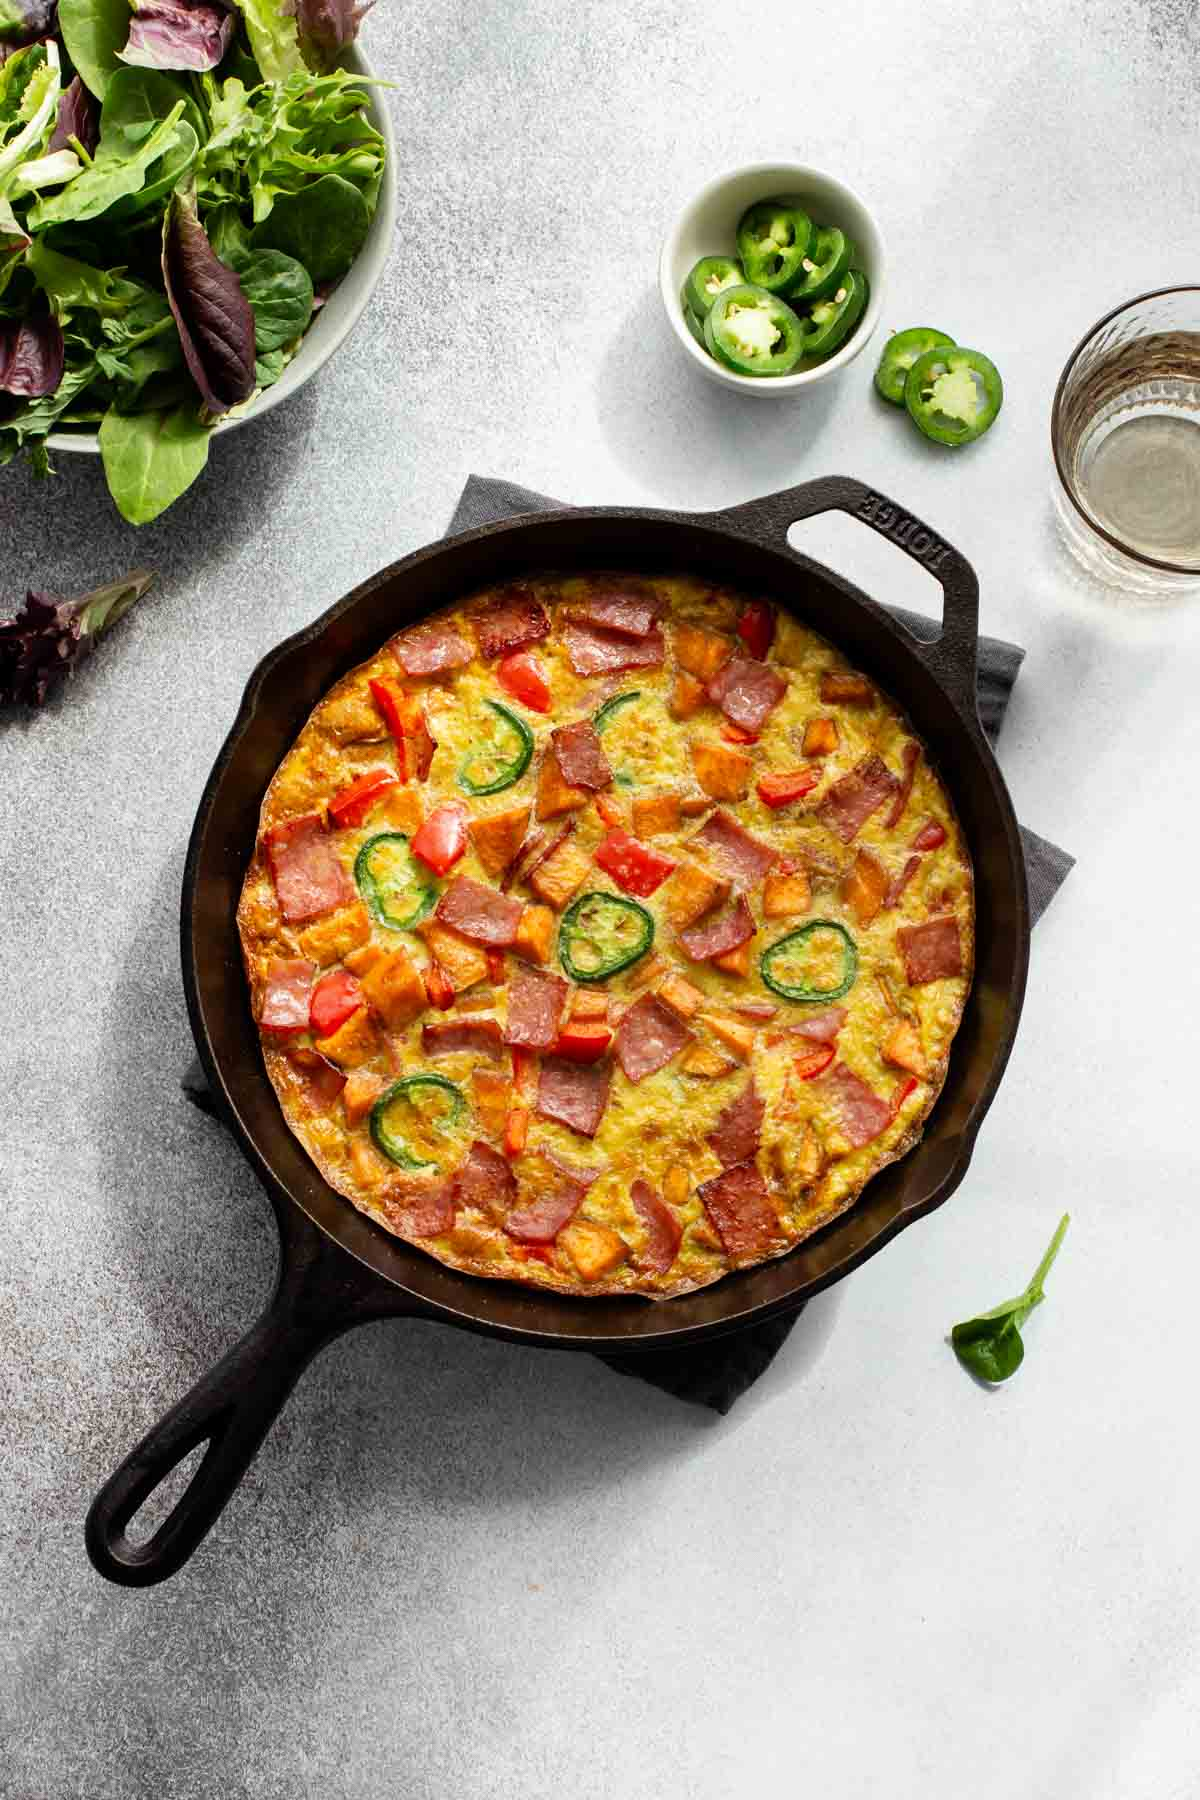 Overhead view of a sweet potato frittata in a cast iron skillet with a green salad off to the side.